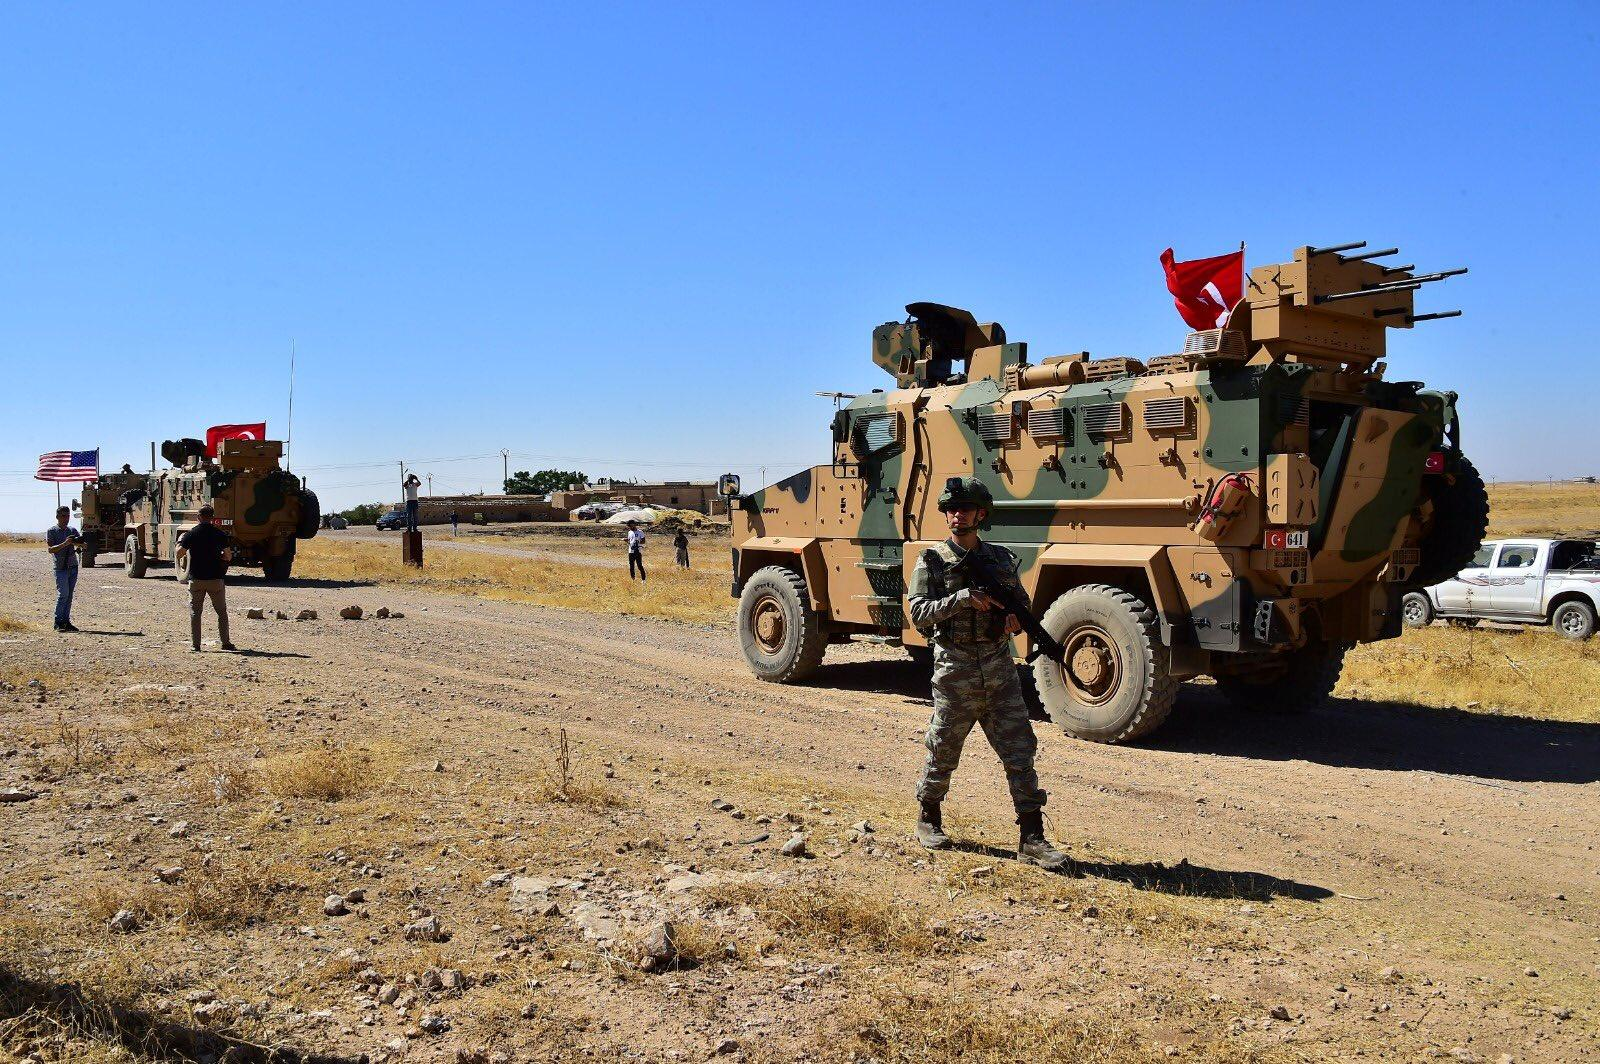 Syria demands withdrawal of U.S., Turkish forces, warns of...